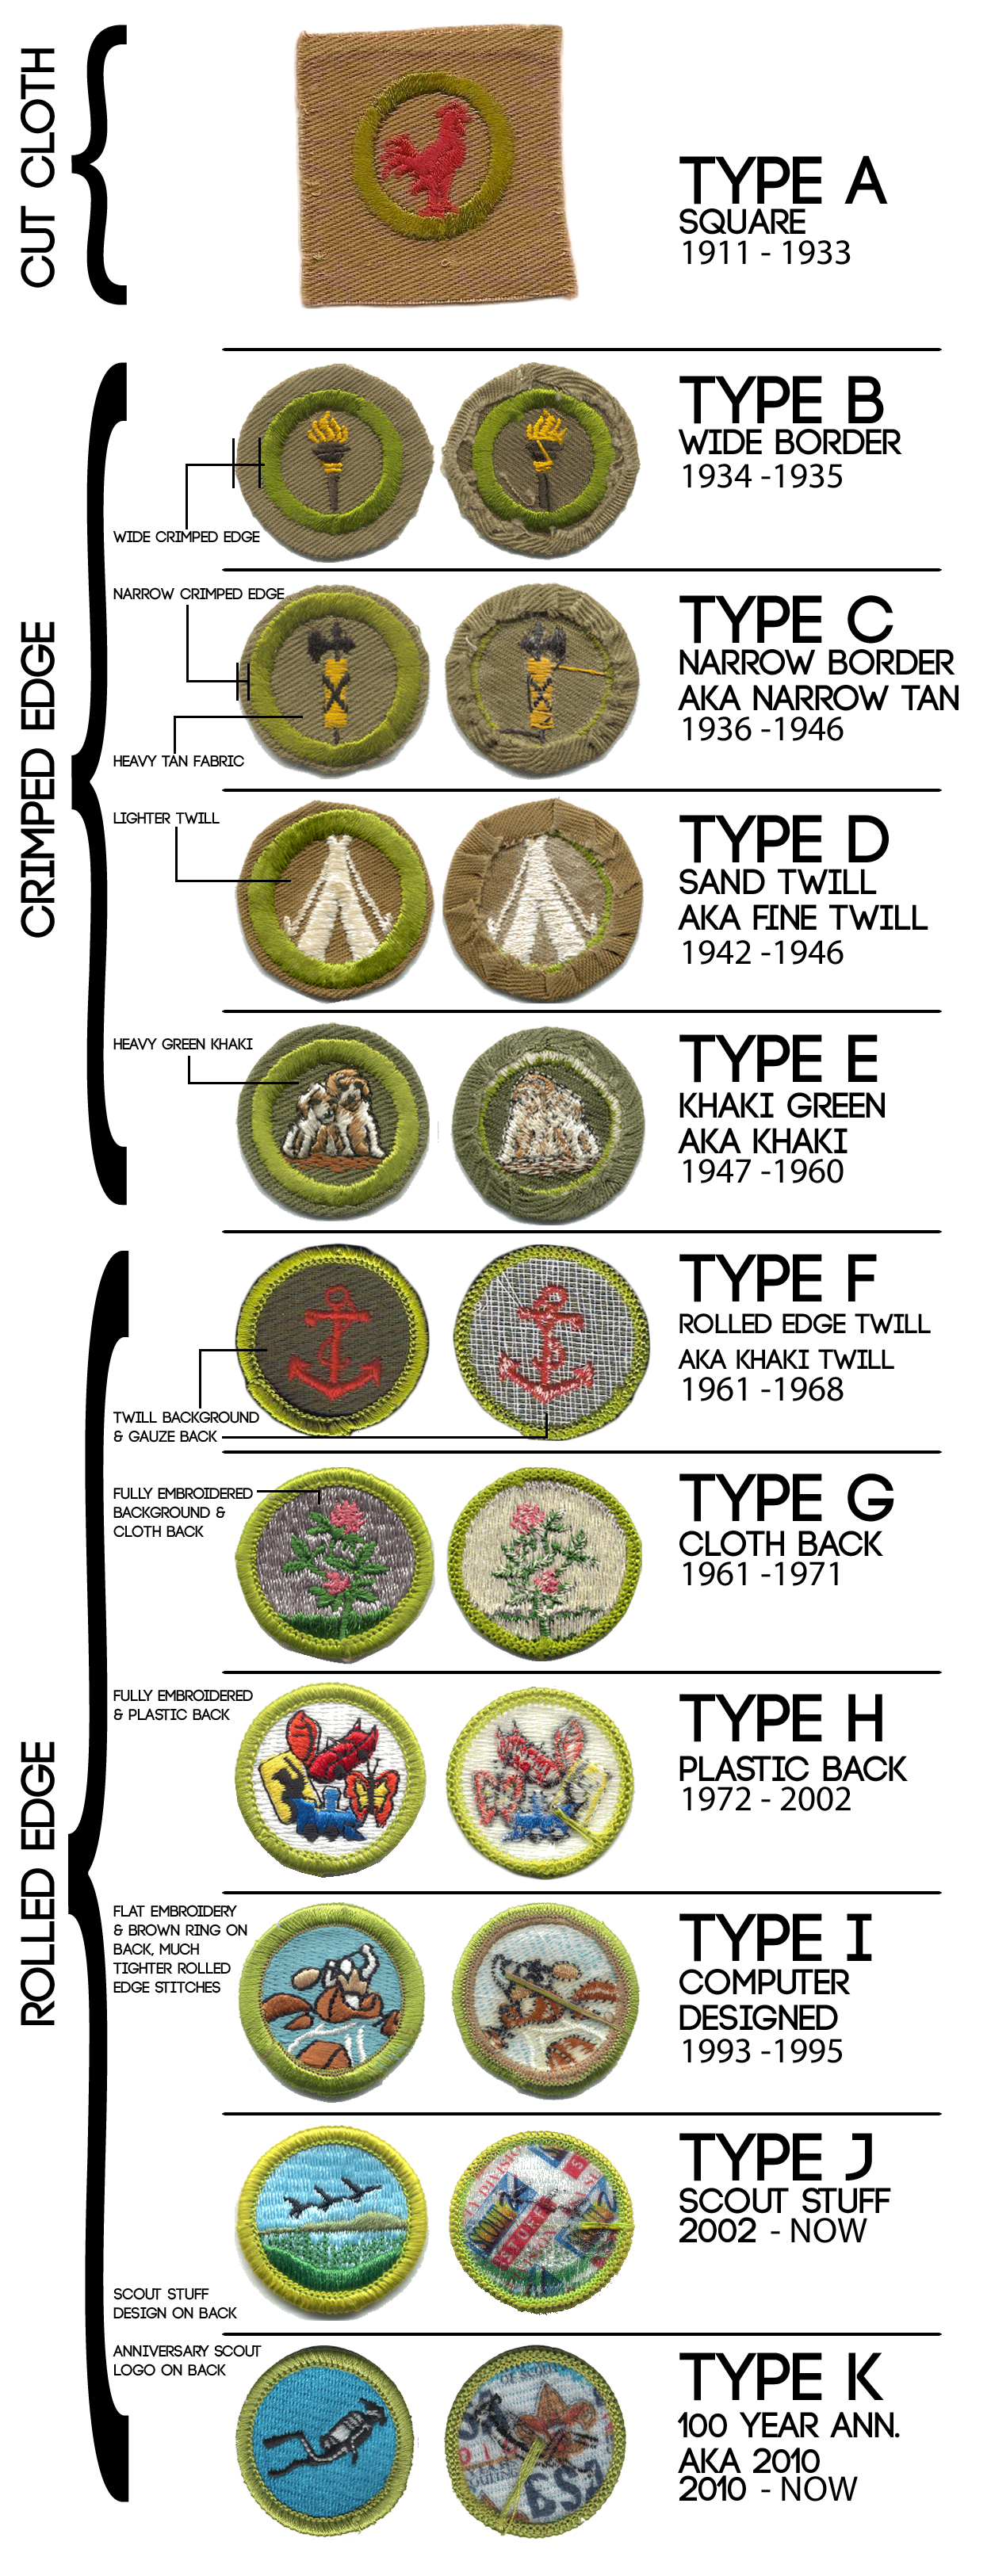 Eagle Scout Required Merit Badges Worksheets for all | Download ...